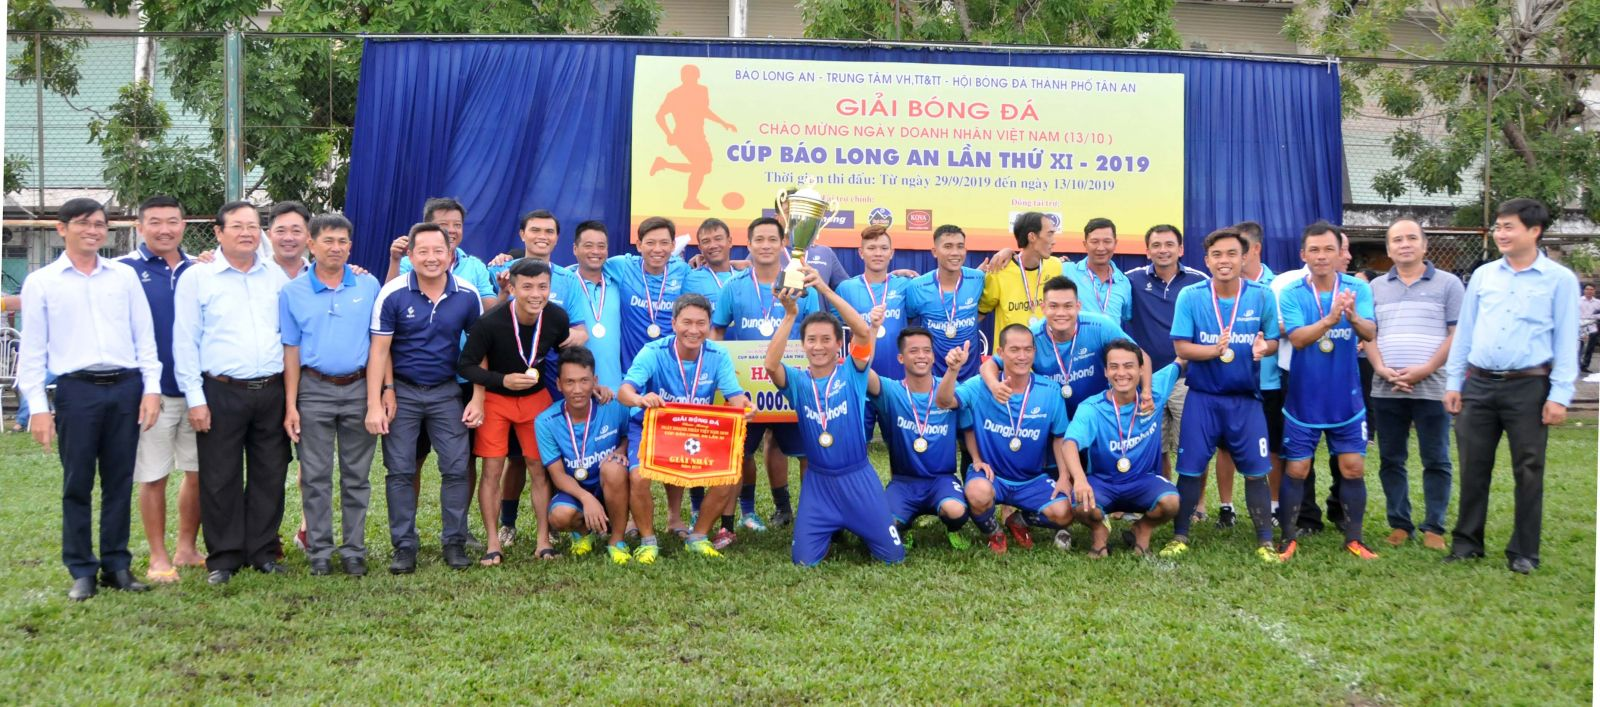 The organizer awards the Cup to Dung Phong team